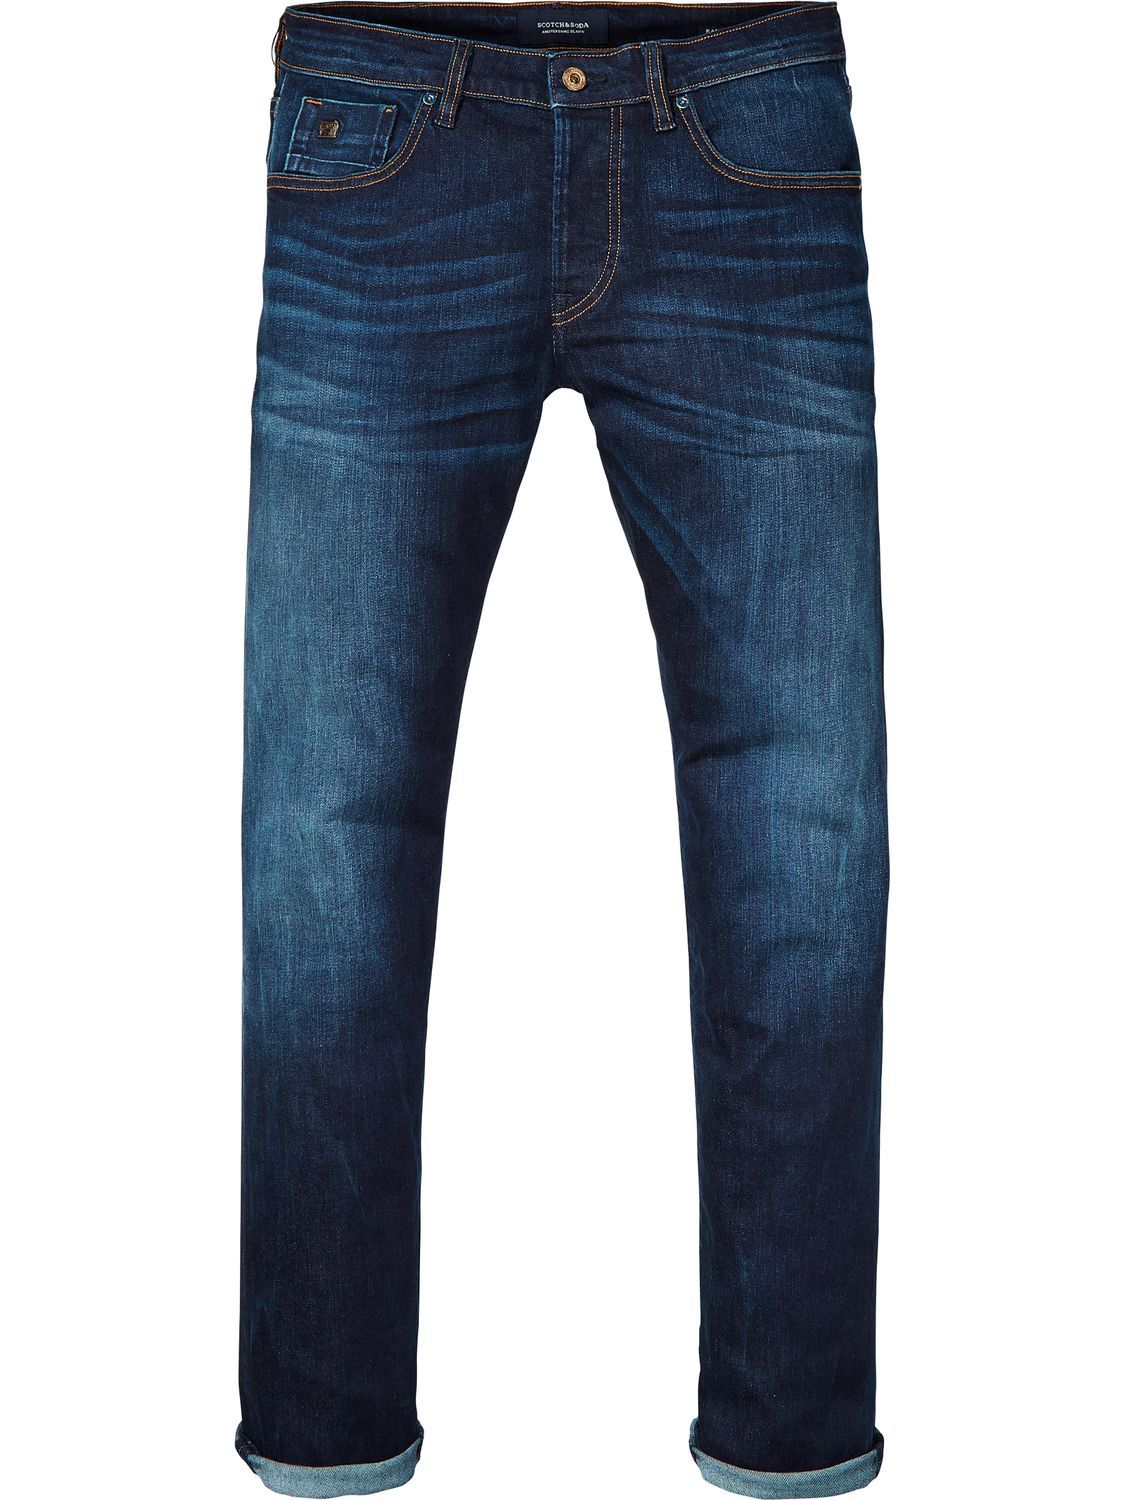 Mens Ralston-Beaten Track Jeans Scotch & Soda Cheap Wholesale Price Cheap Classic 2018 Cheap Online Outlet 2018 New Discount Manchester Great Sale tXGVa